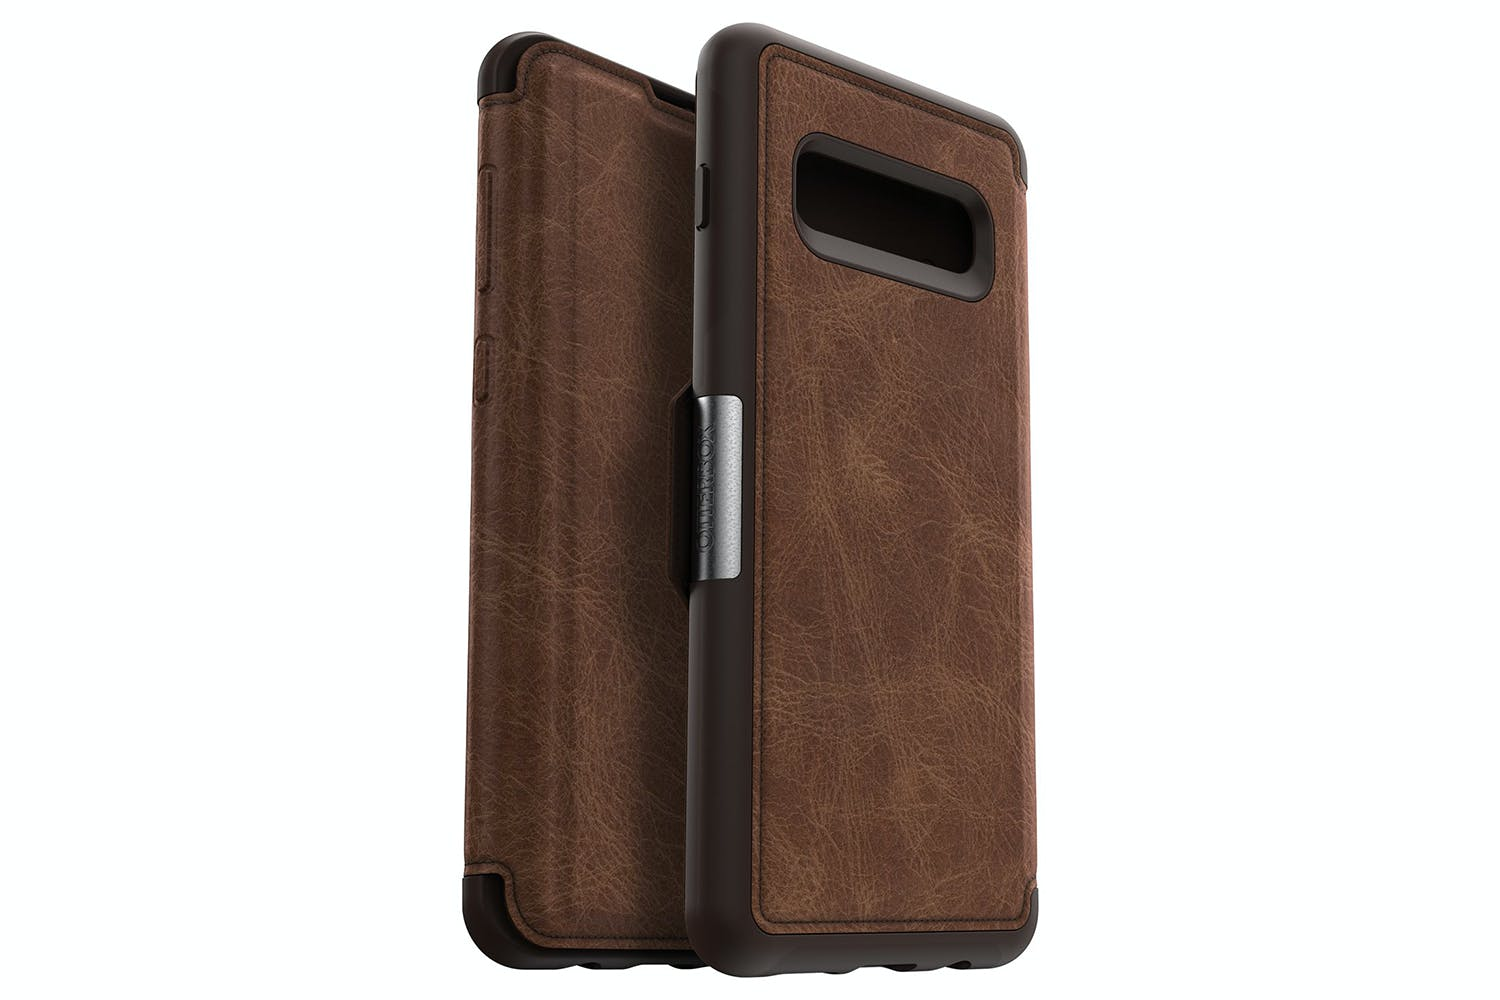 Otterbox Strada Galaxy S10+ Wallet Case | Espresso Brown